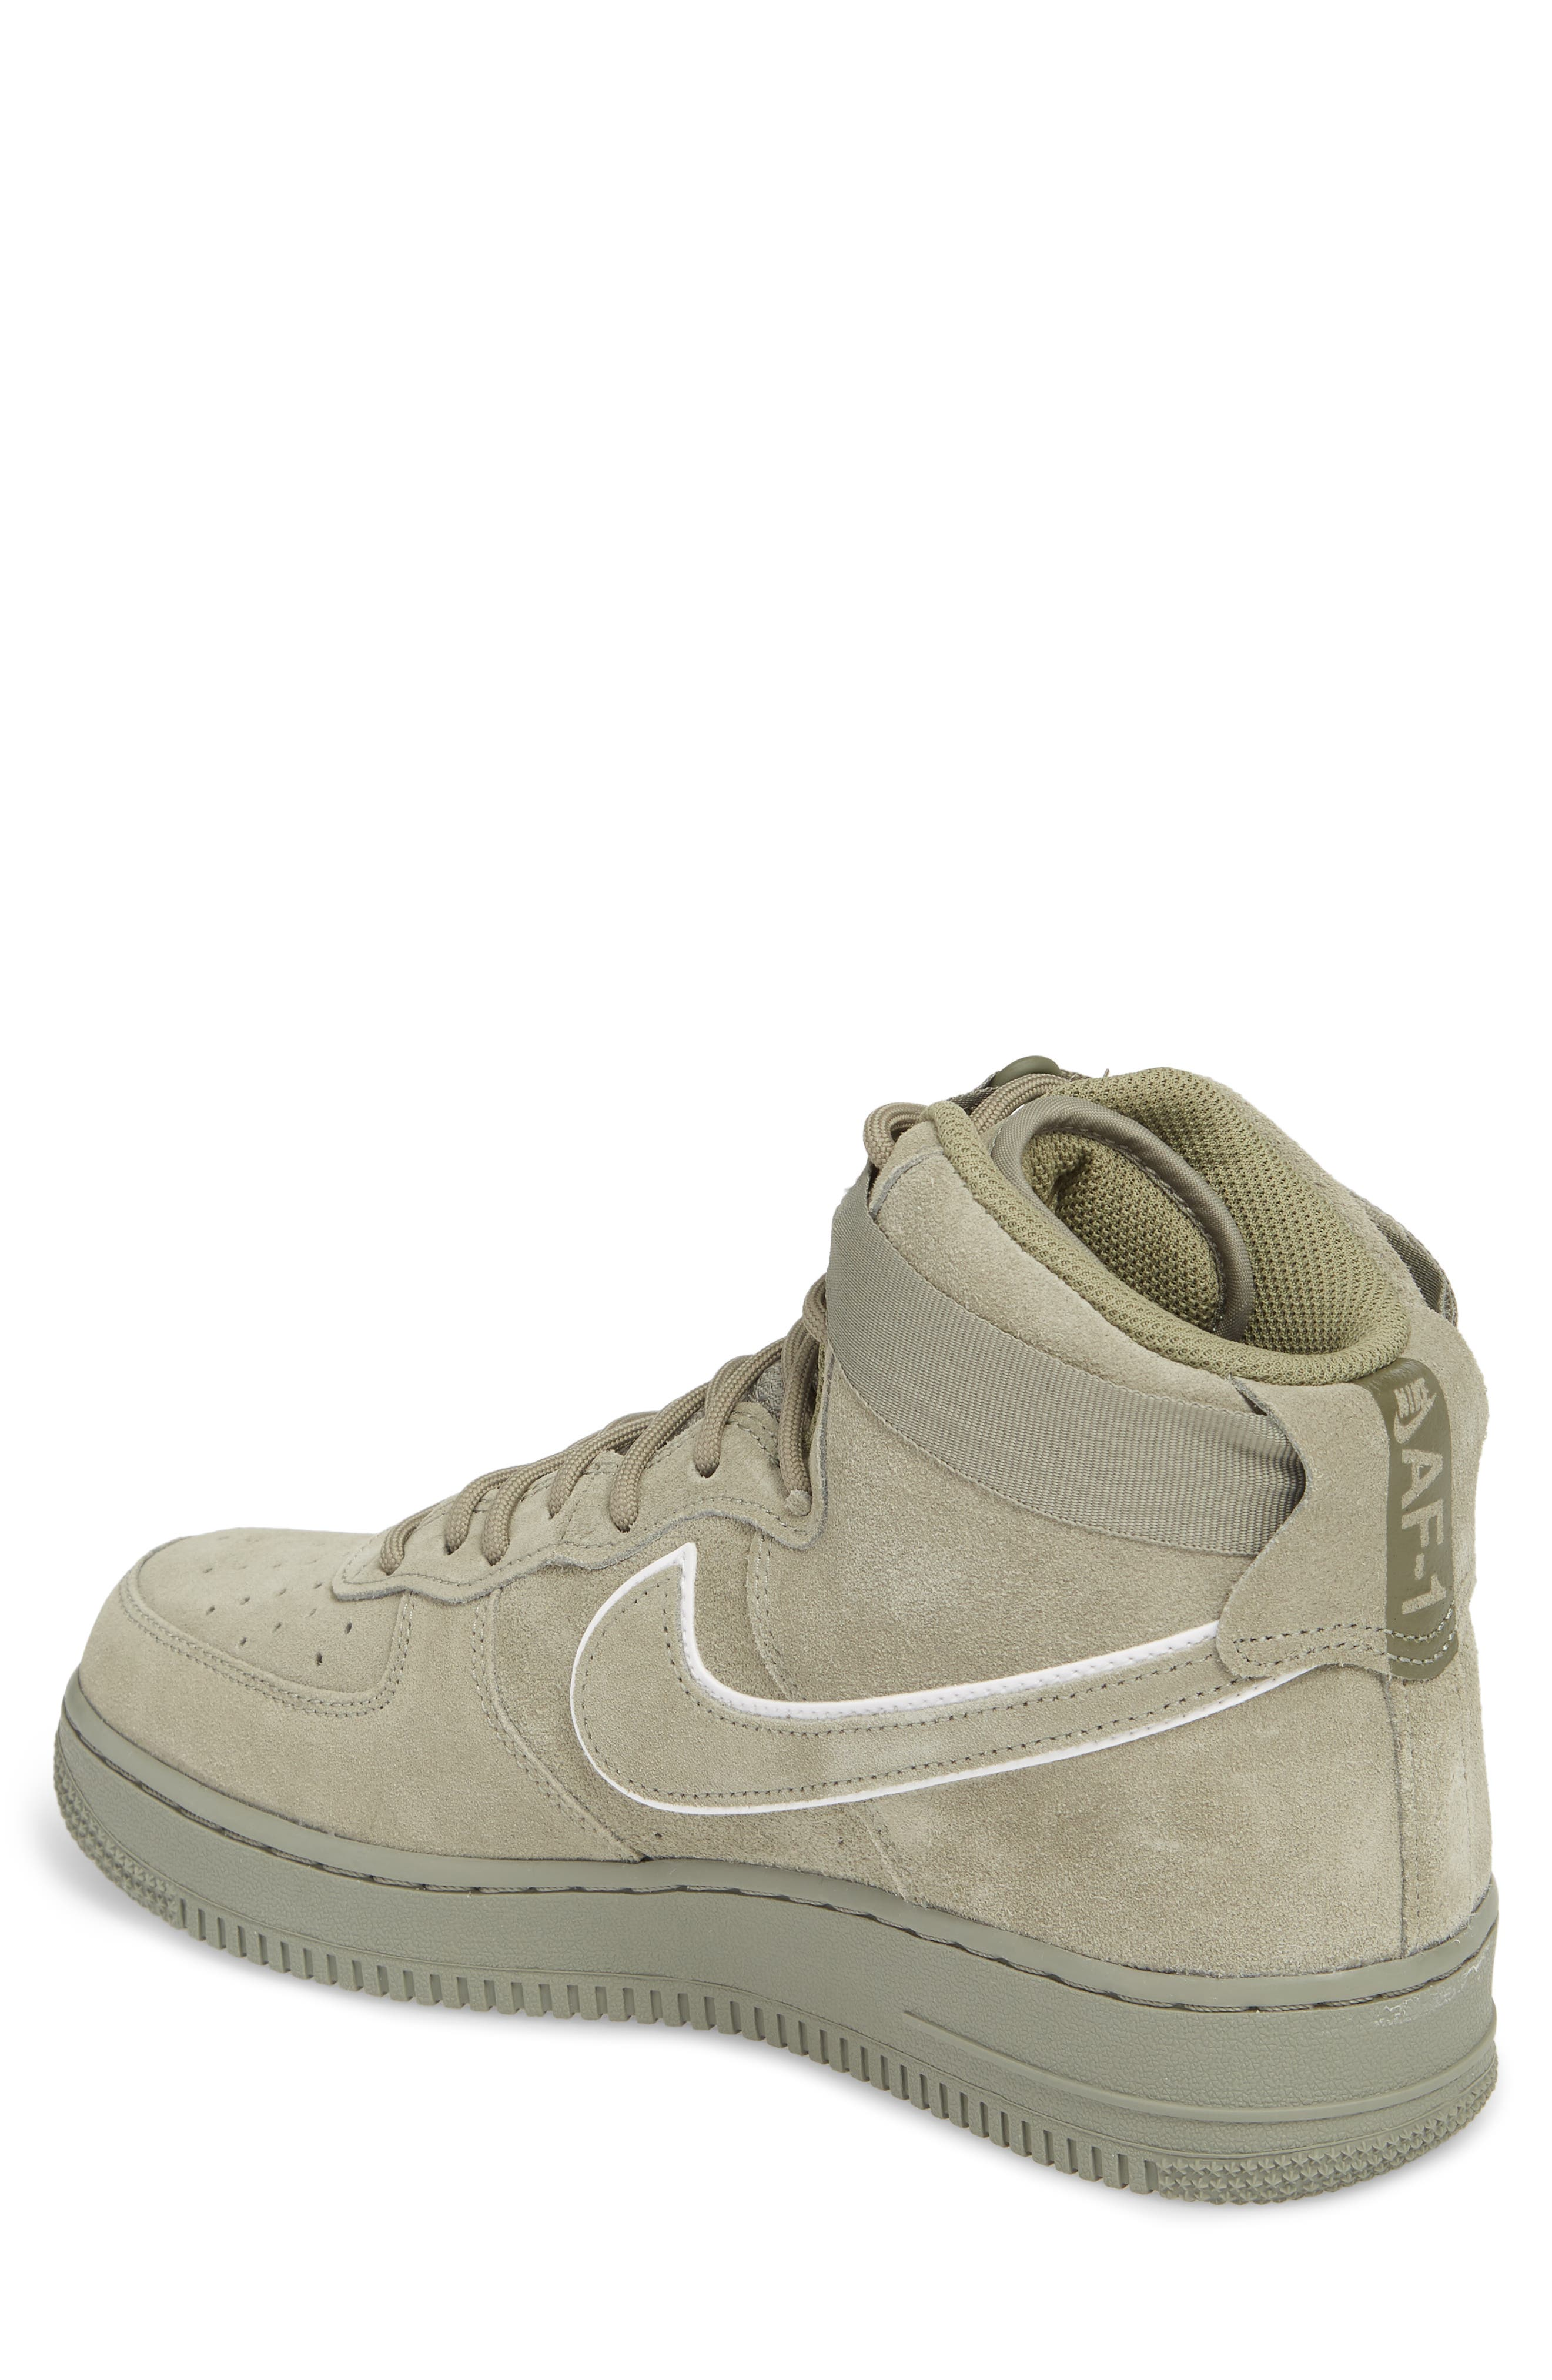 Air Force 1 High '07 LV8 Suede Sneaker,                             Alternate thumbnail 4, color,